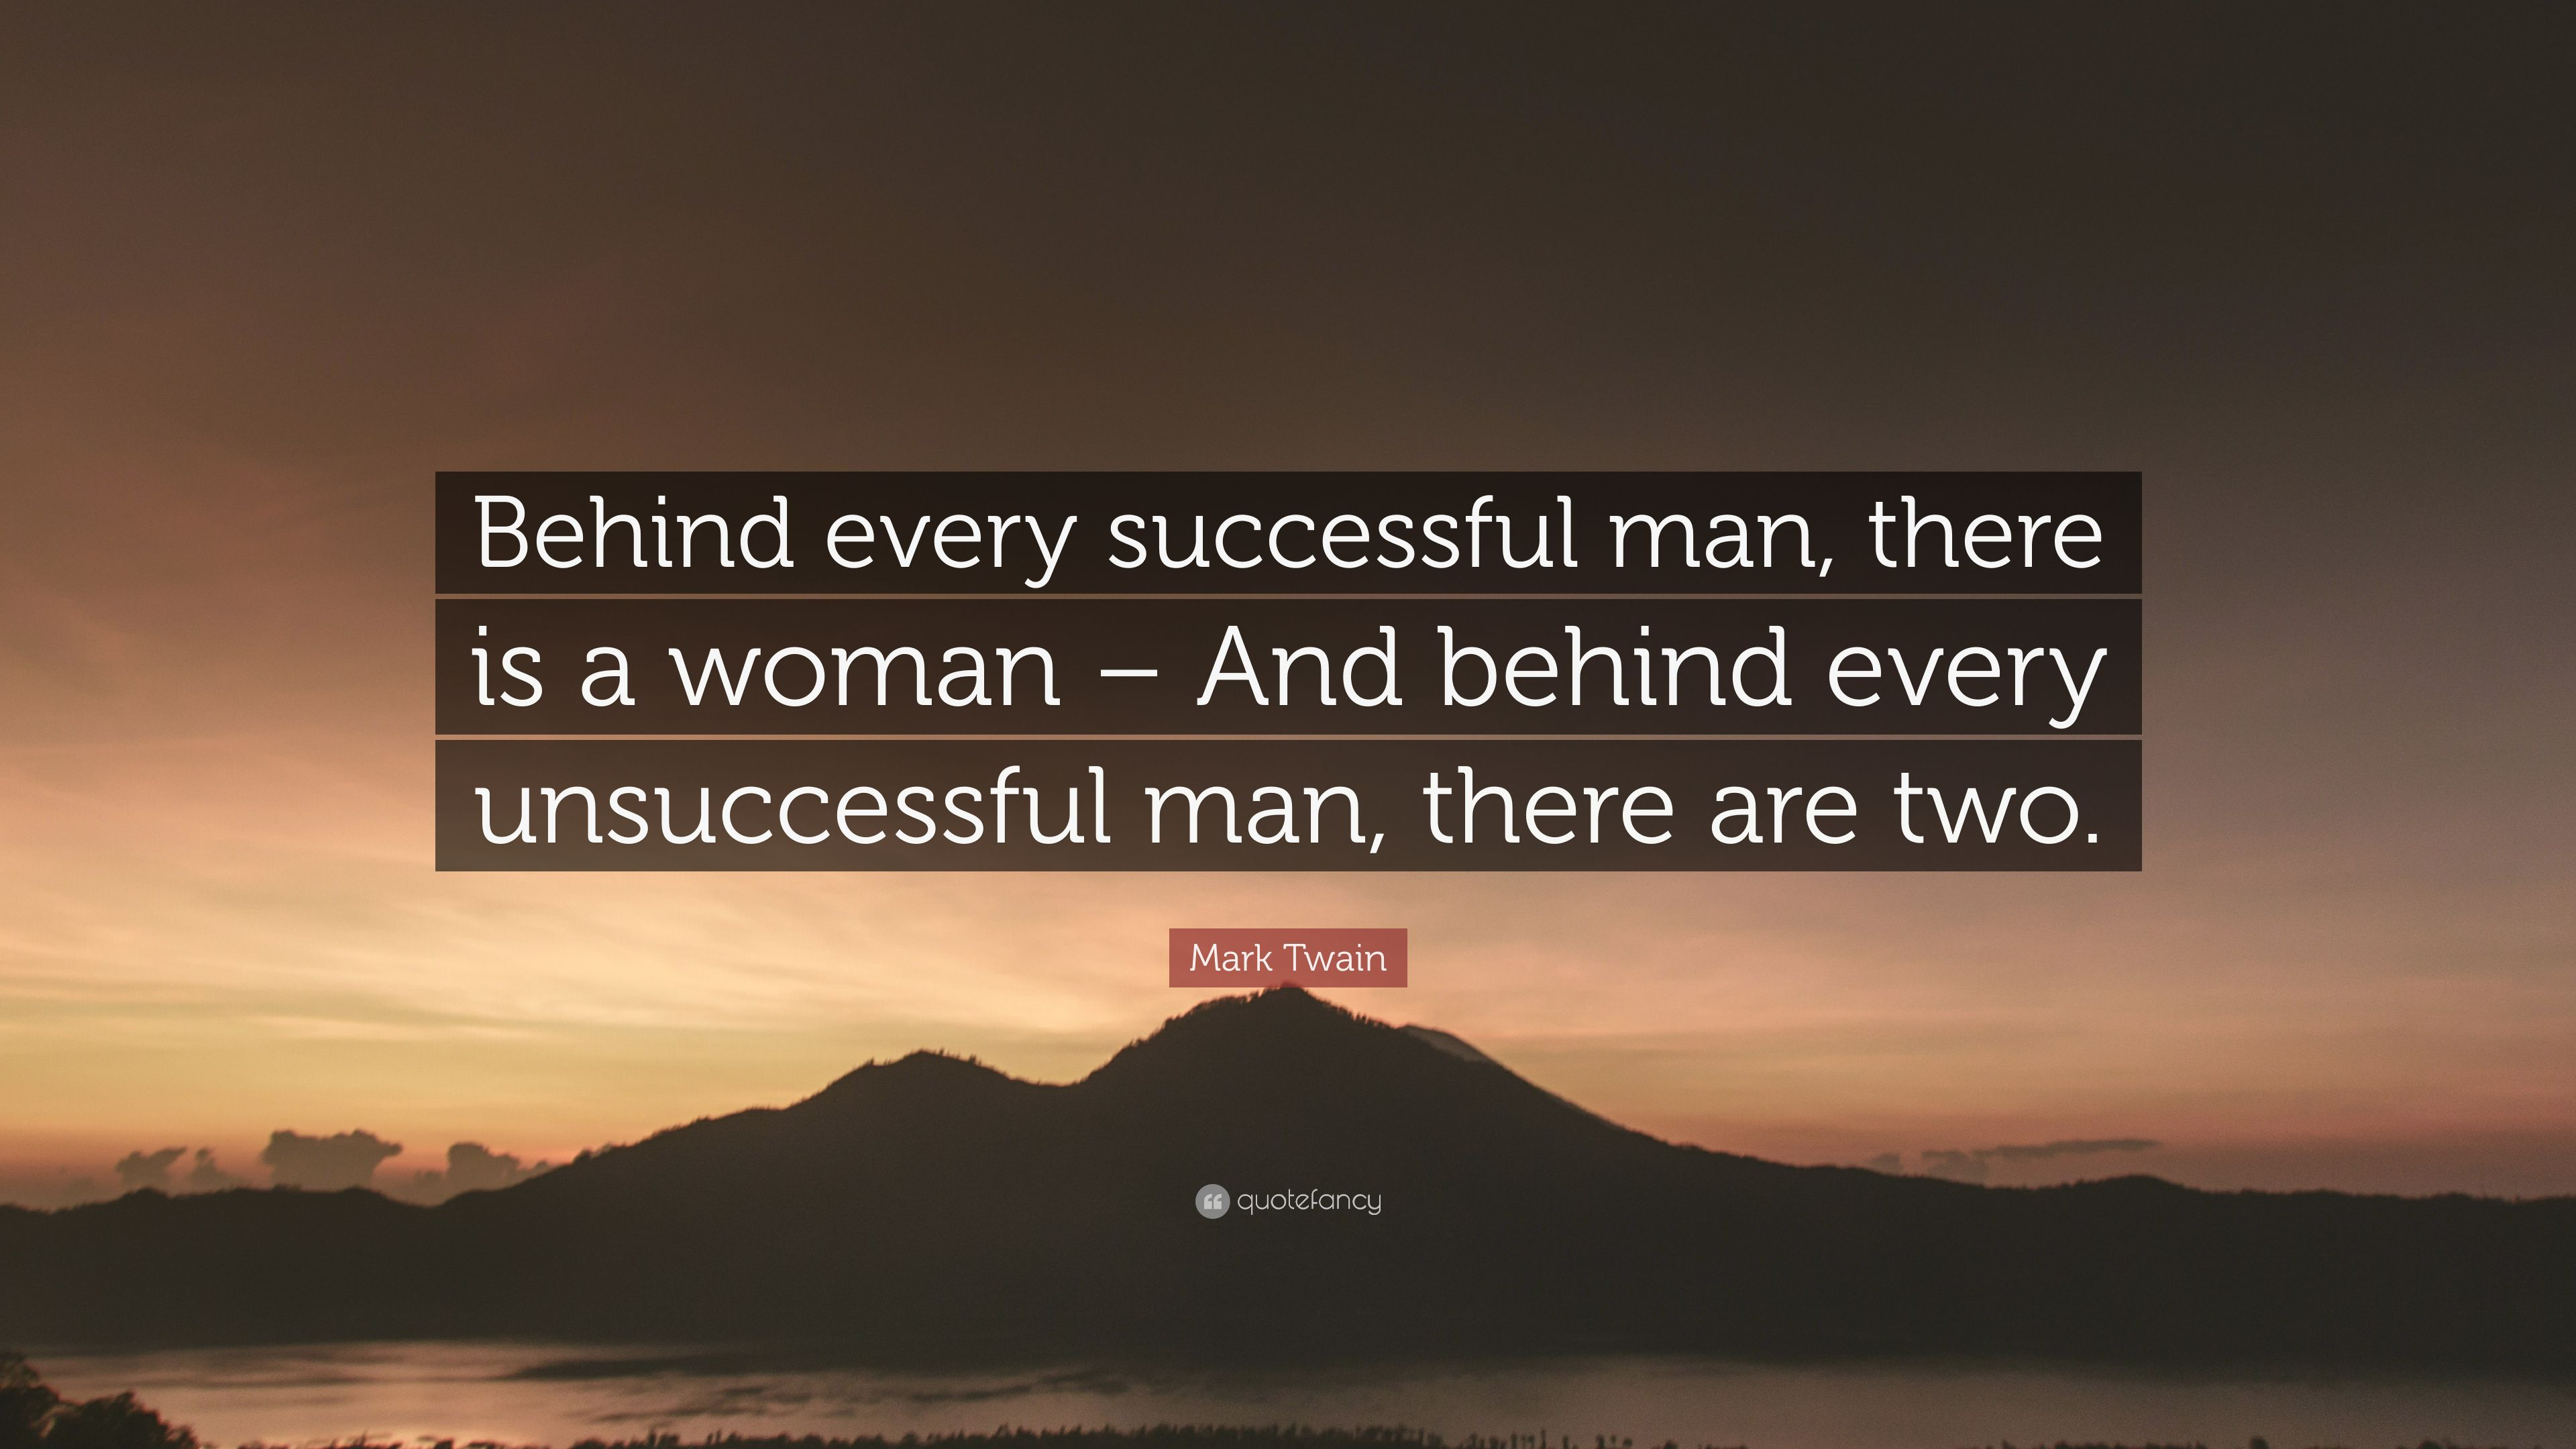 behind every successful man there is a woman essay Successful men are usually ready to face challenges and tackle them head-on with positive energy, the source of which largely originates from their homes the key player in the home for this man is a woman with strong character that can stand with her husband in prayer during these times, and give him.